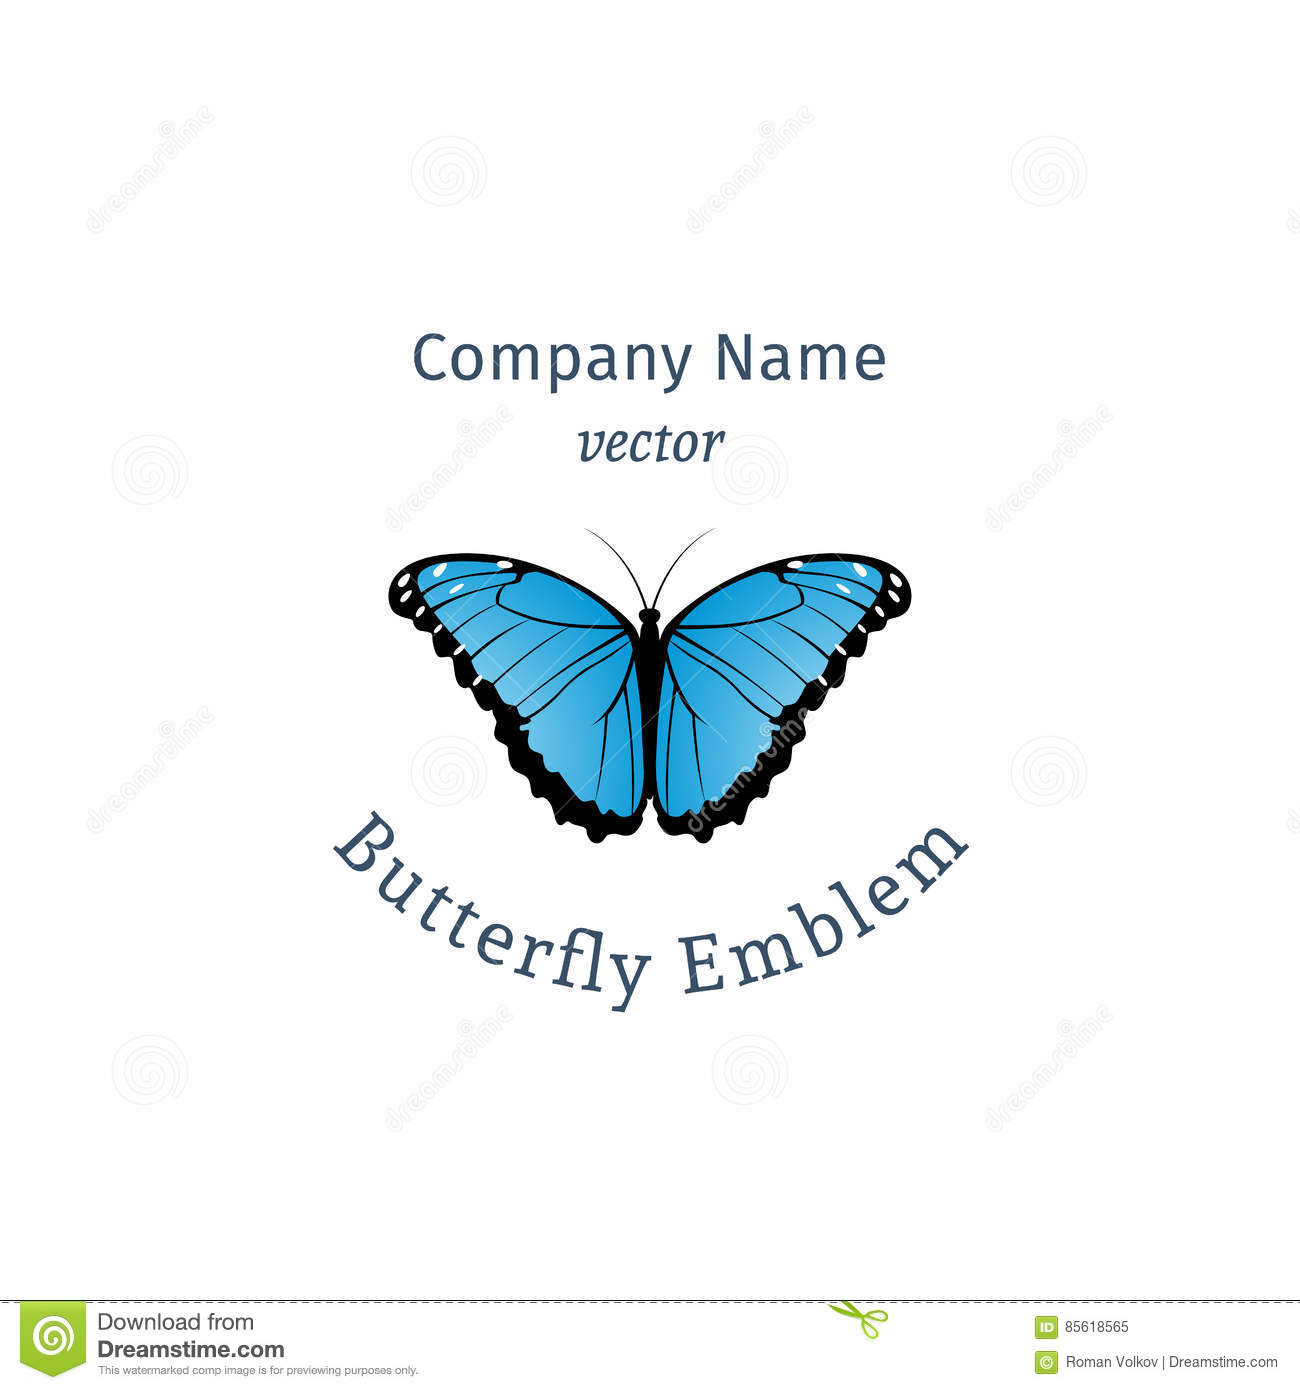 Vector cartoon butterfly emblem stock vector illustration of vector cartoon butterfly emblem biocorpaavc Image collections